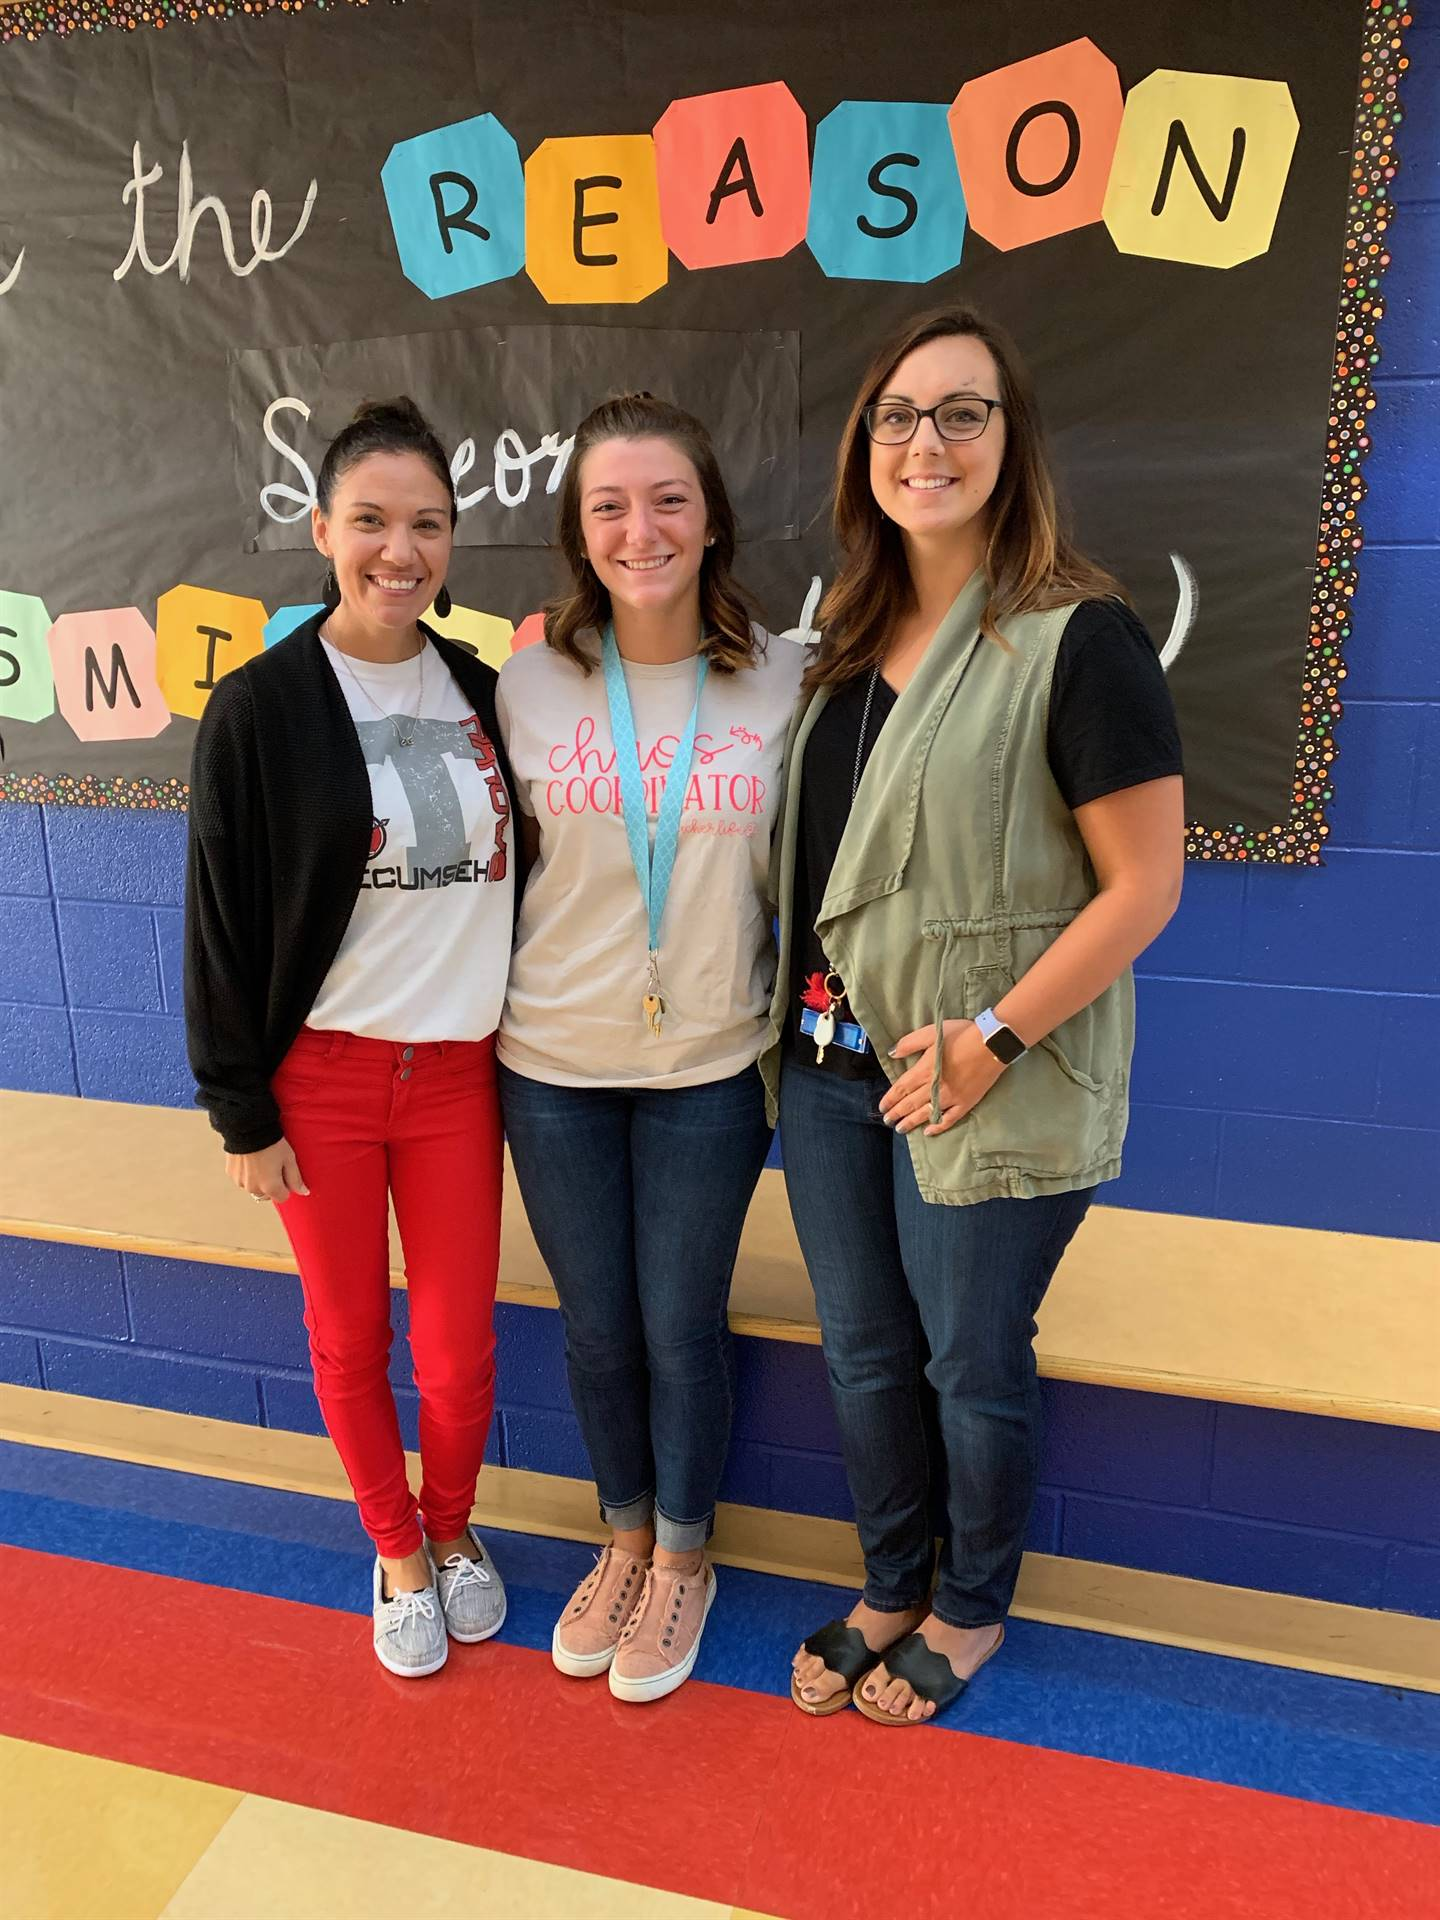 New secretary, intervention specialist, and 4th grade teacher at NCE